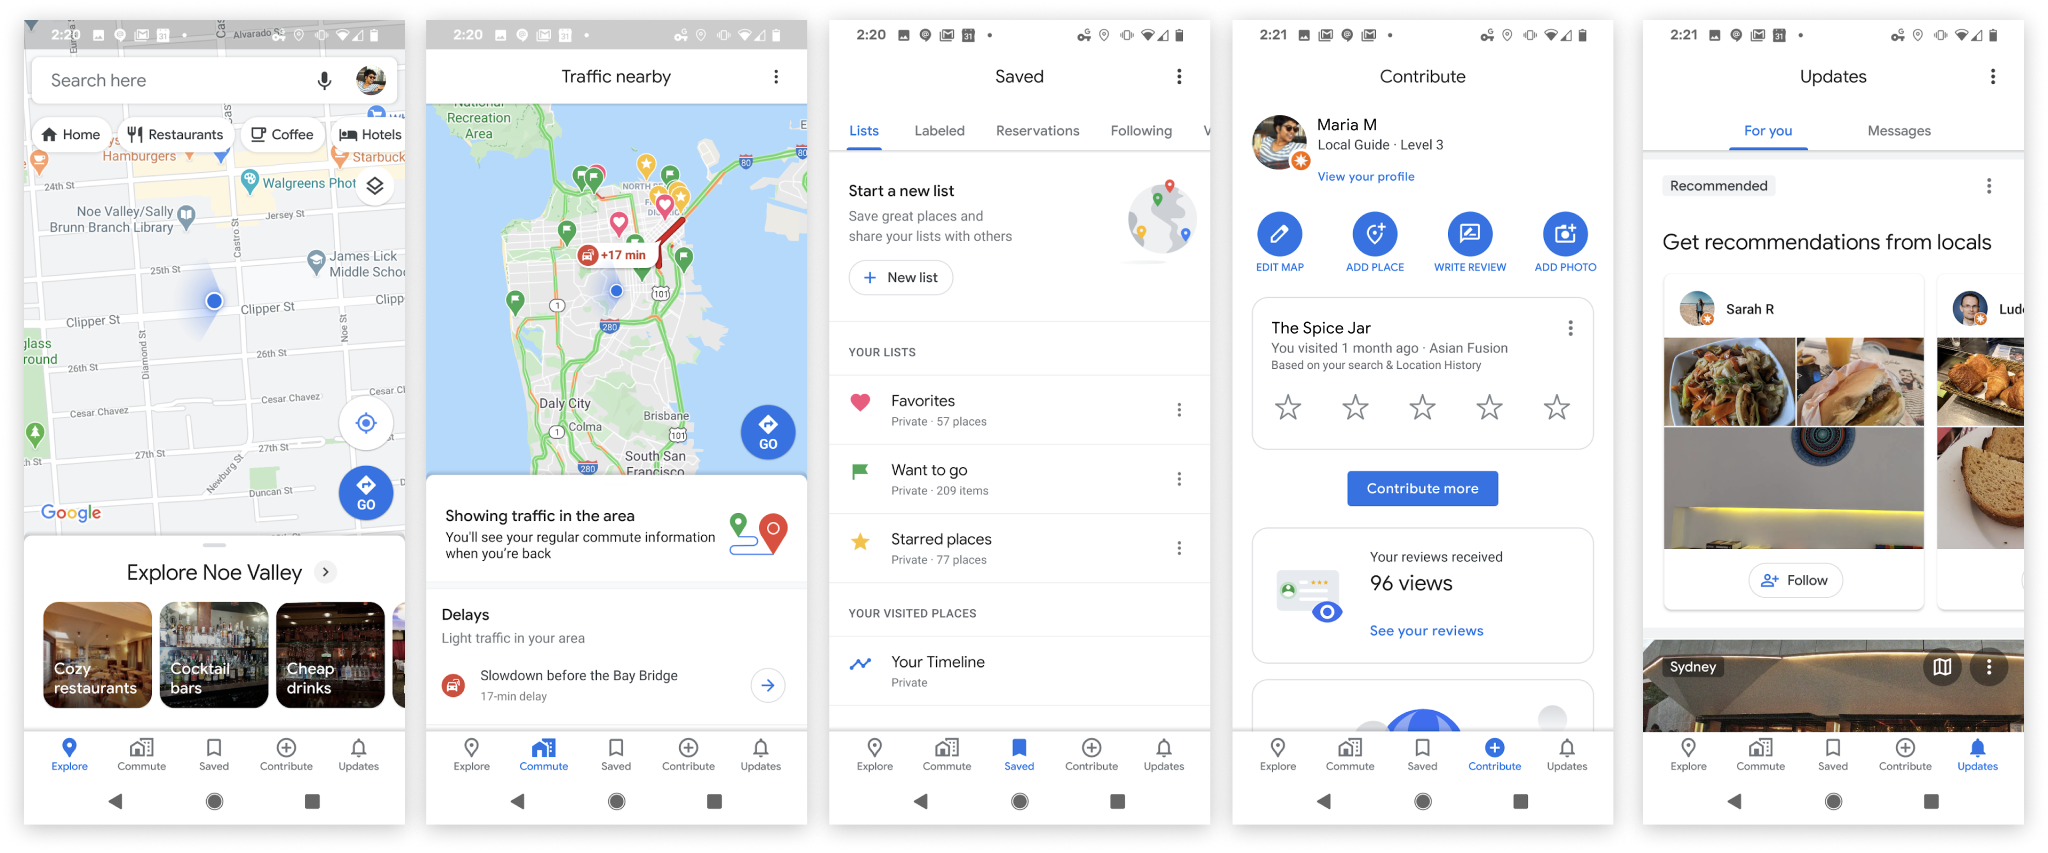 In celebration of its 15th anniversary, Google has added five easy-to-access tabs: Explore, Commute, Saved, Contribute and Updates. Photo courtesy: Google